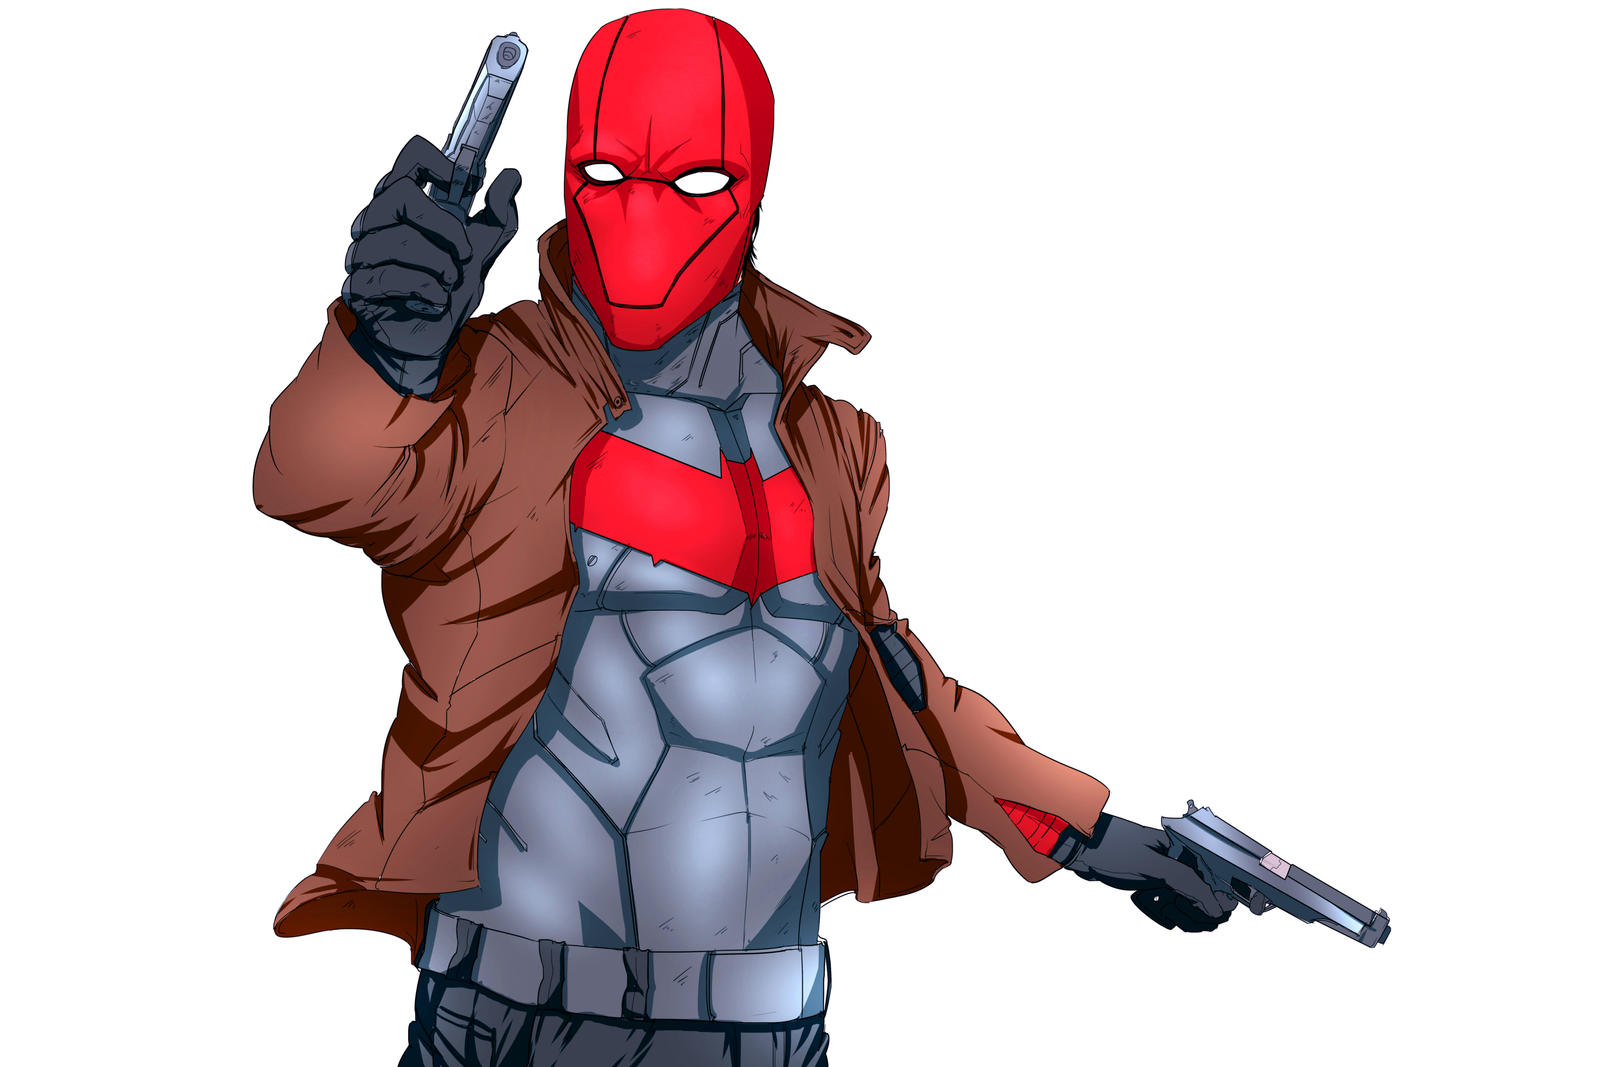 Red hood no background by animixter on deviantart - Hood cartoon wallpaper ...